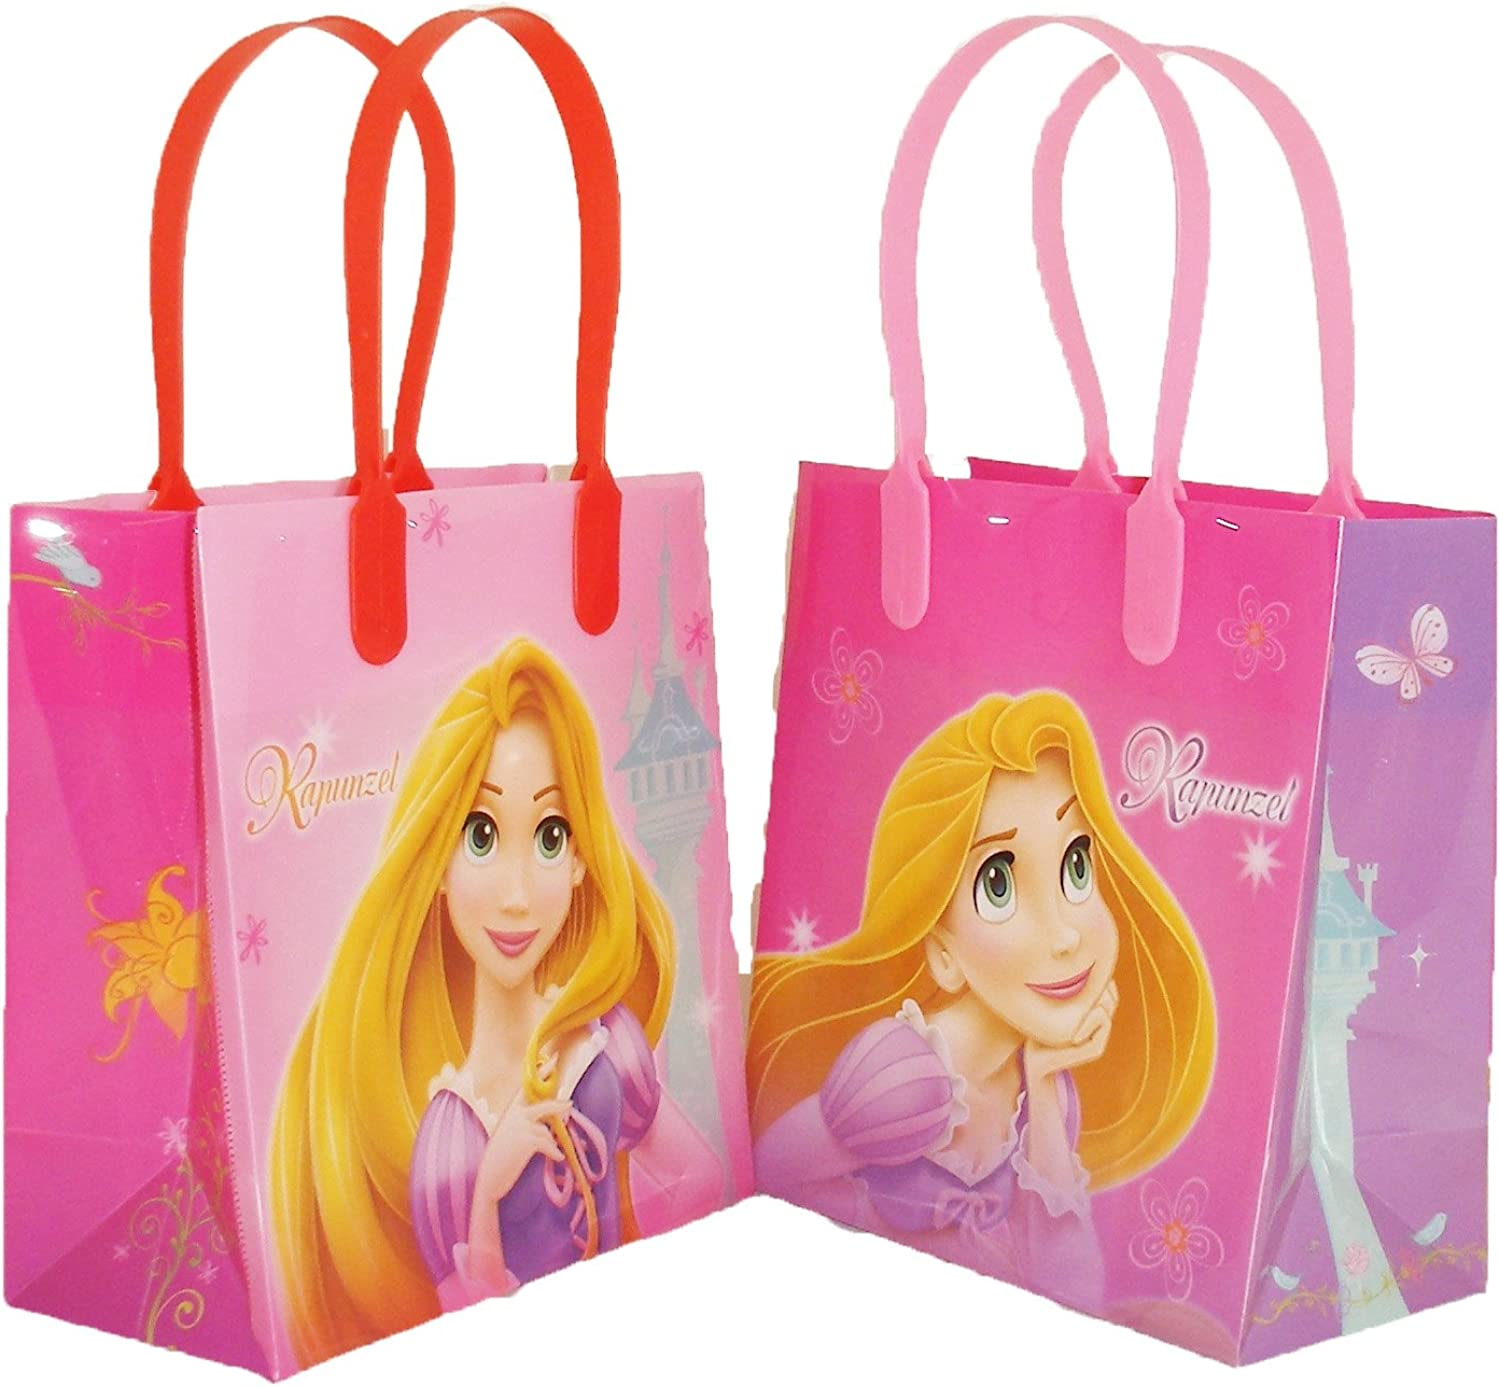 Disney Princess Rapunzel Party Favor Goodie Small Gift Bags 12 by Unknown